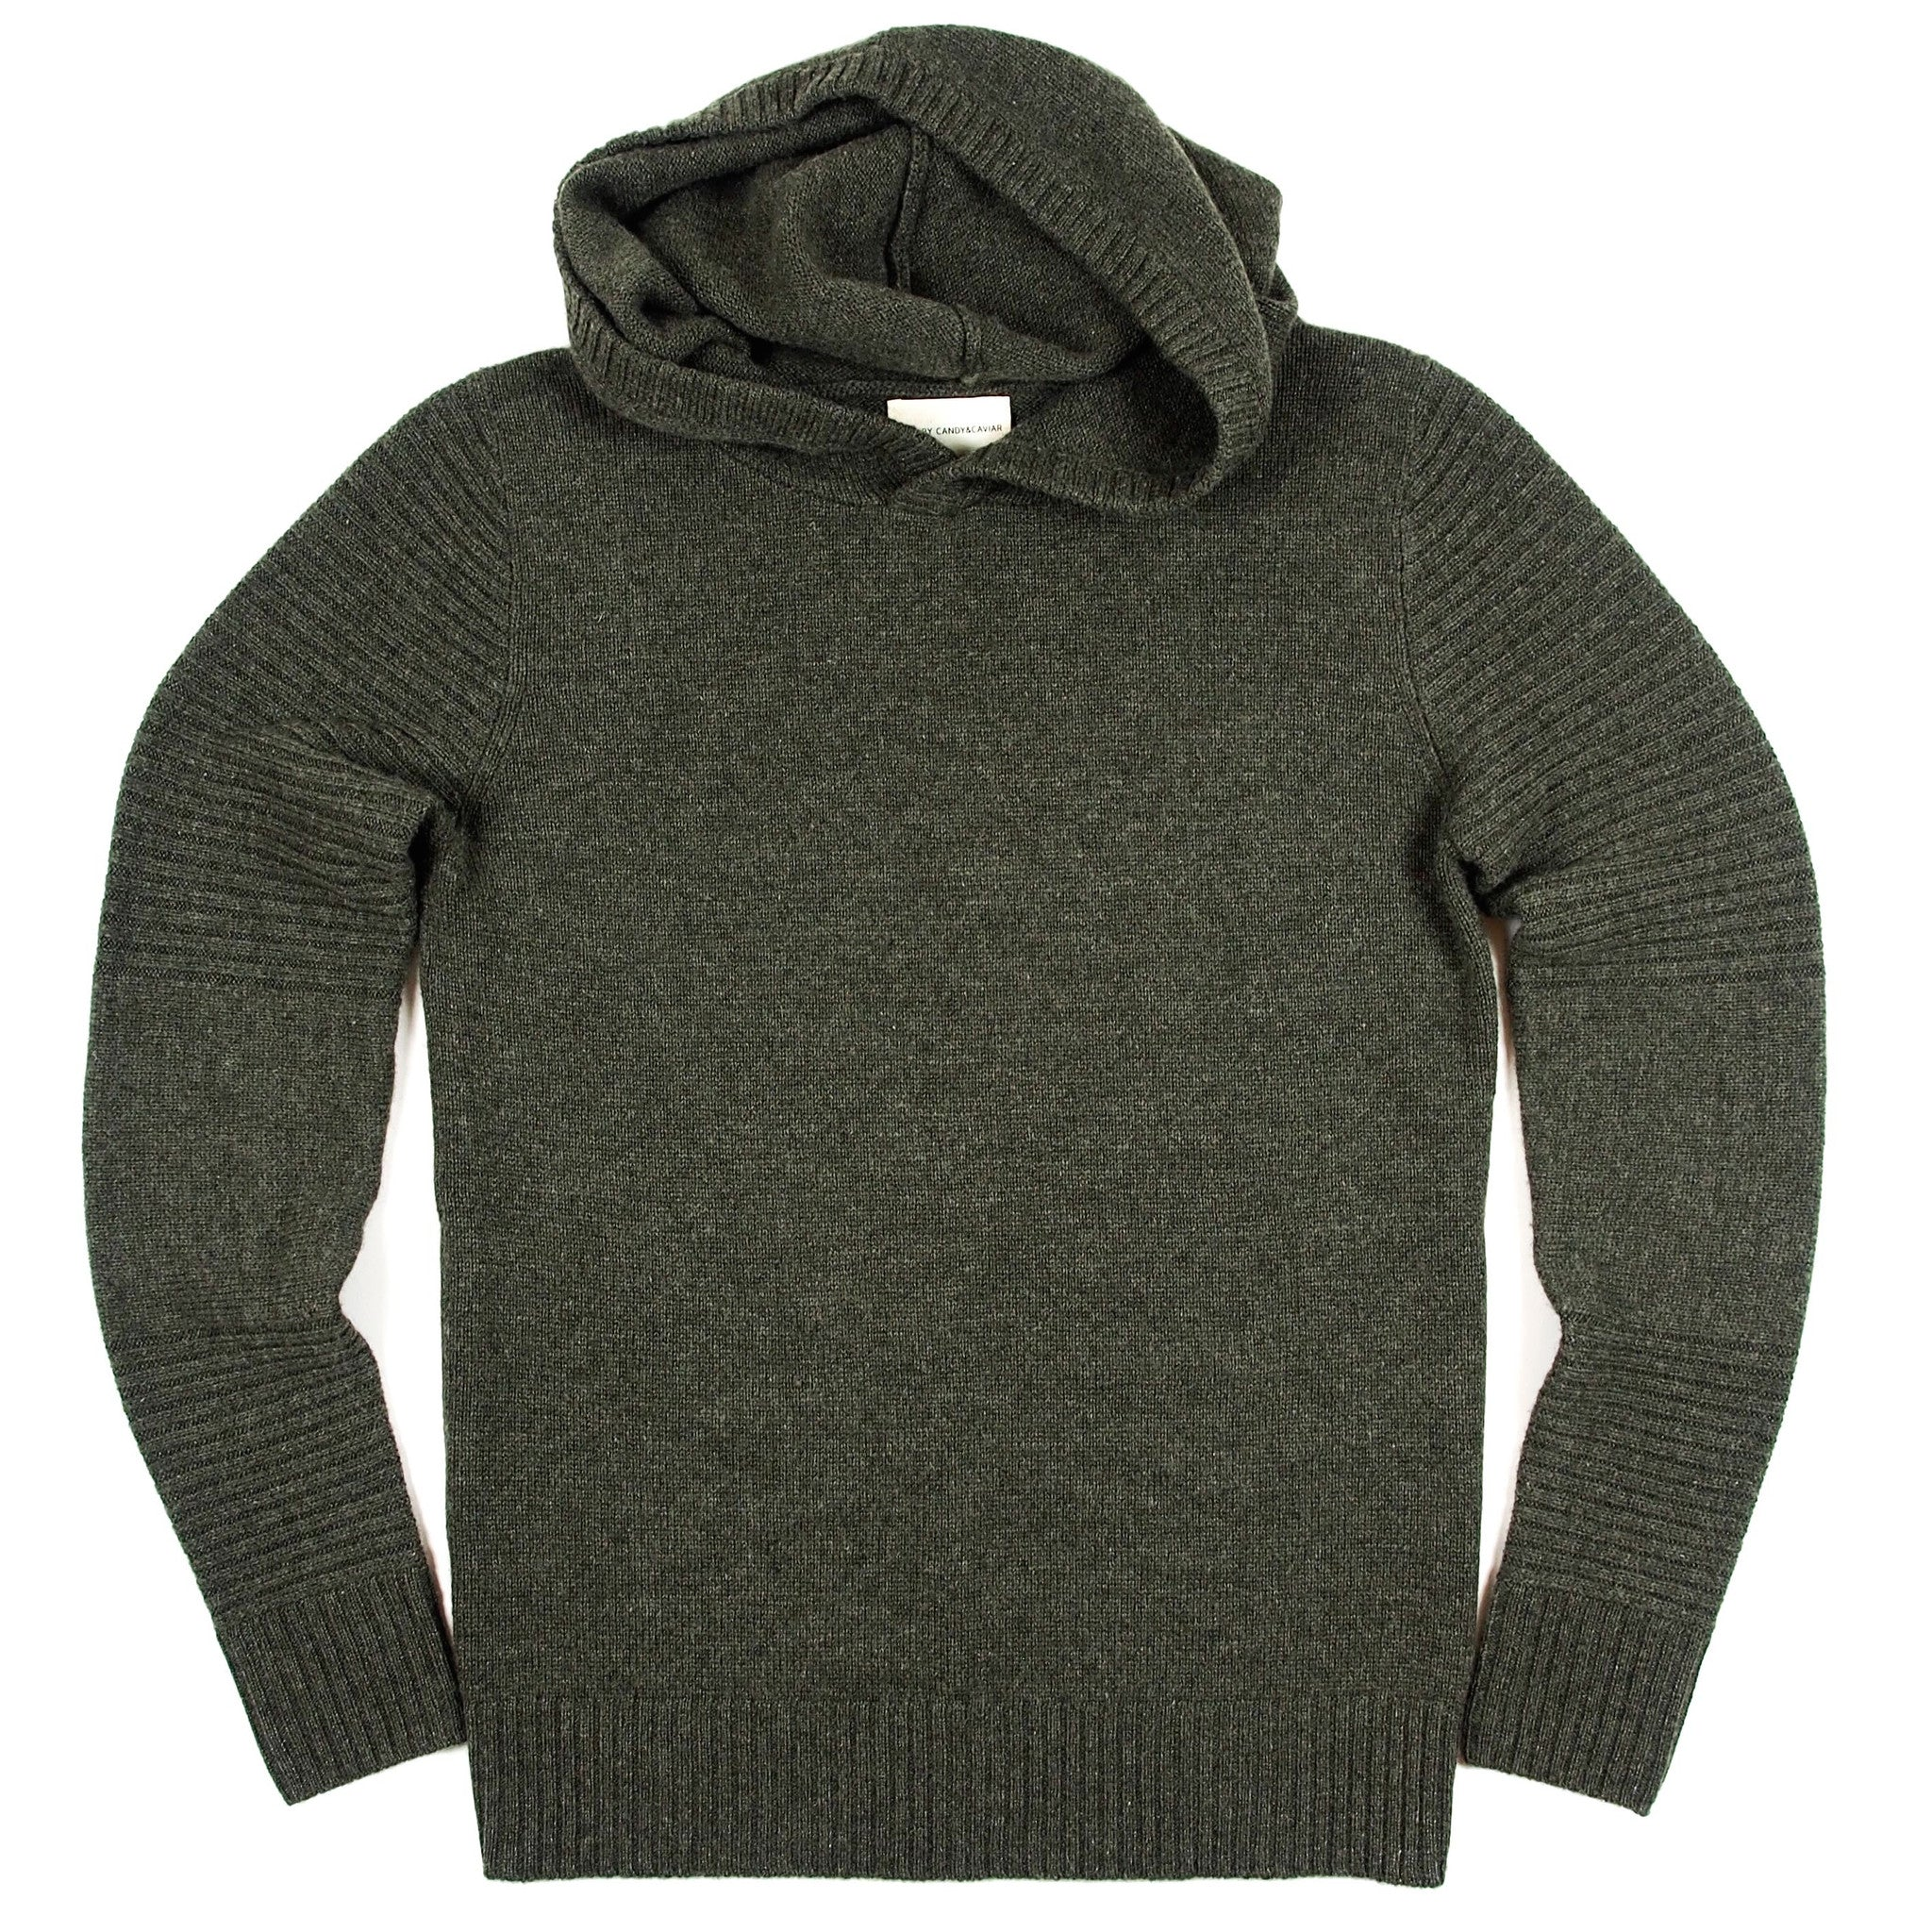 Cashmere pullover hoodie